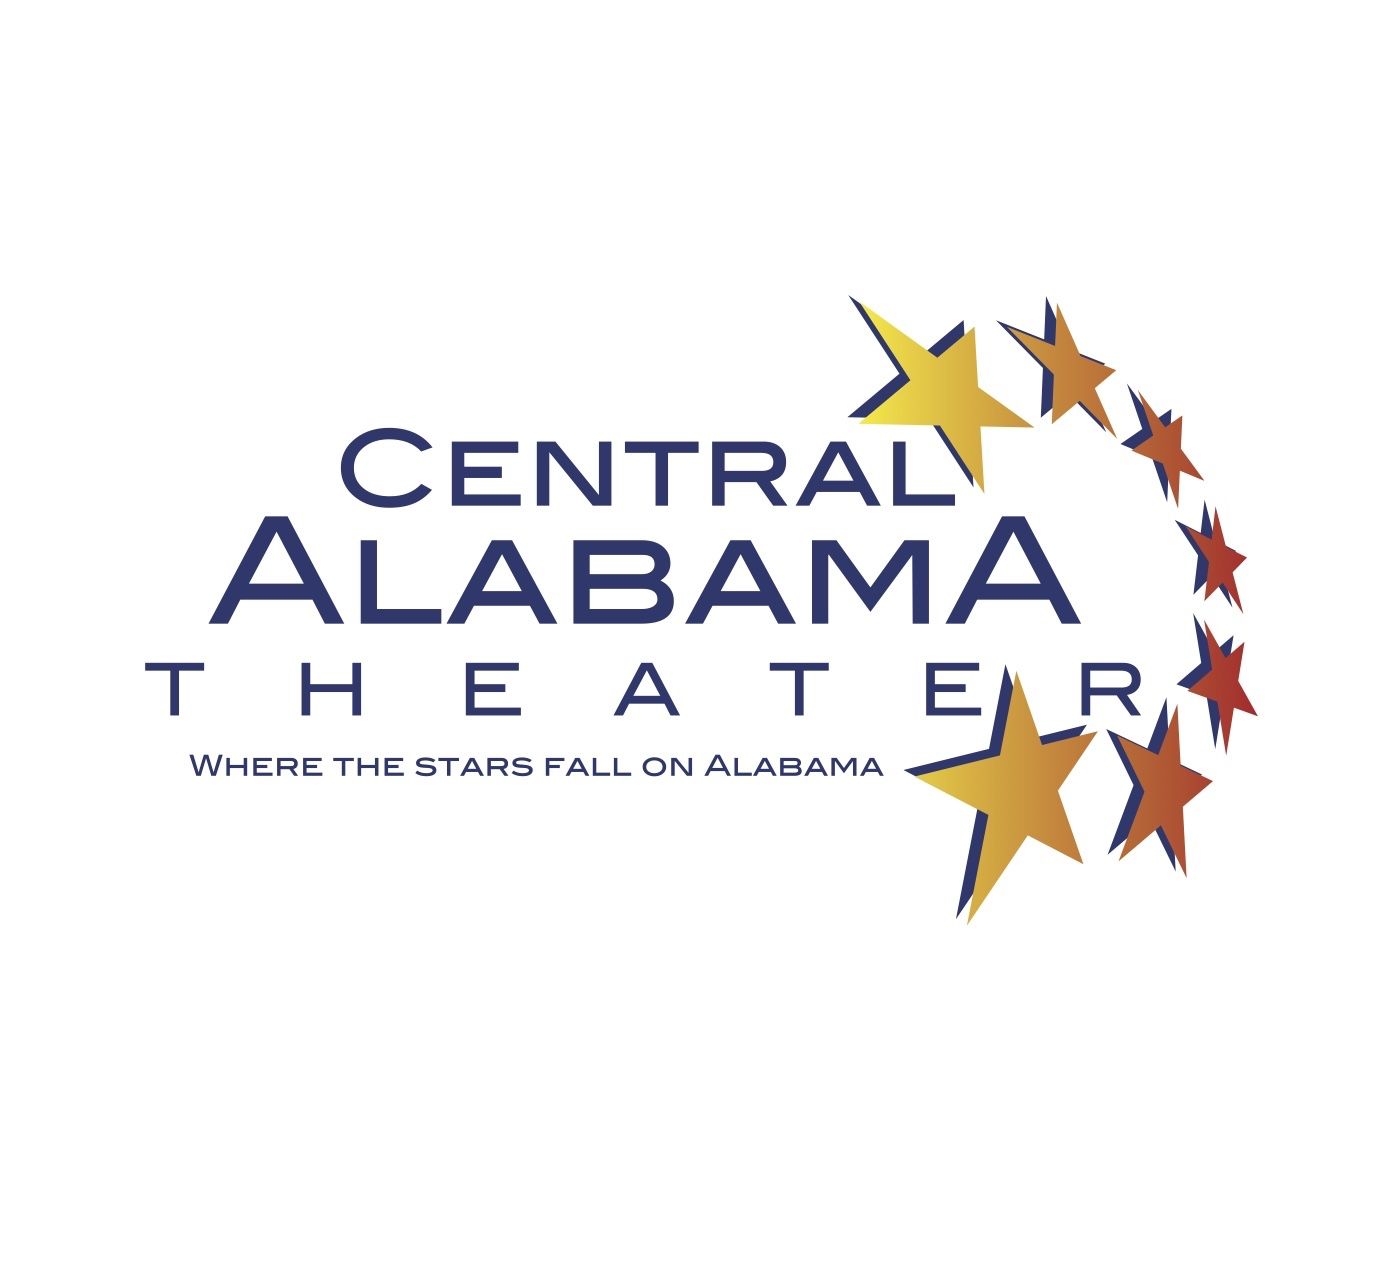 Central Alabama Theater